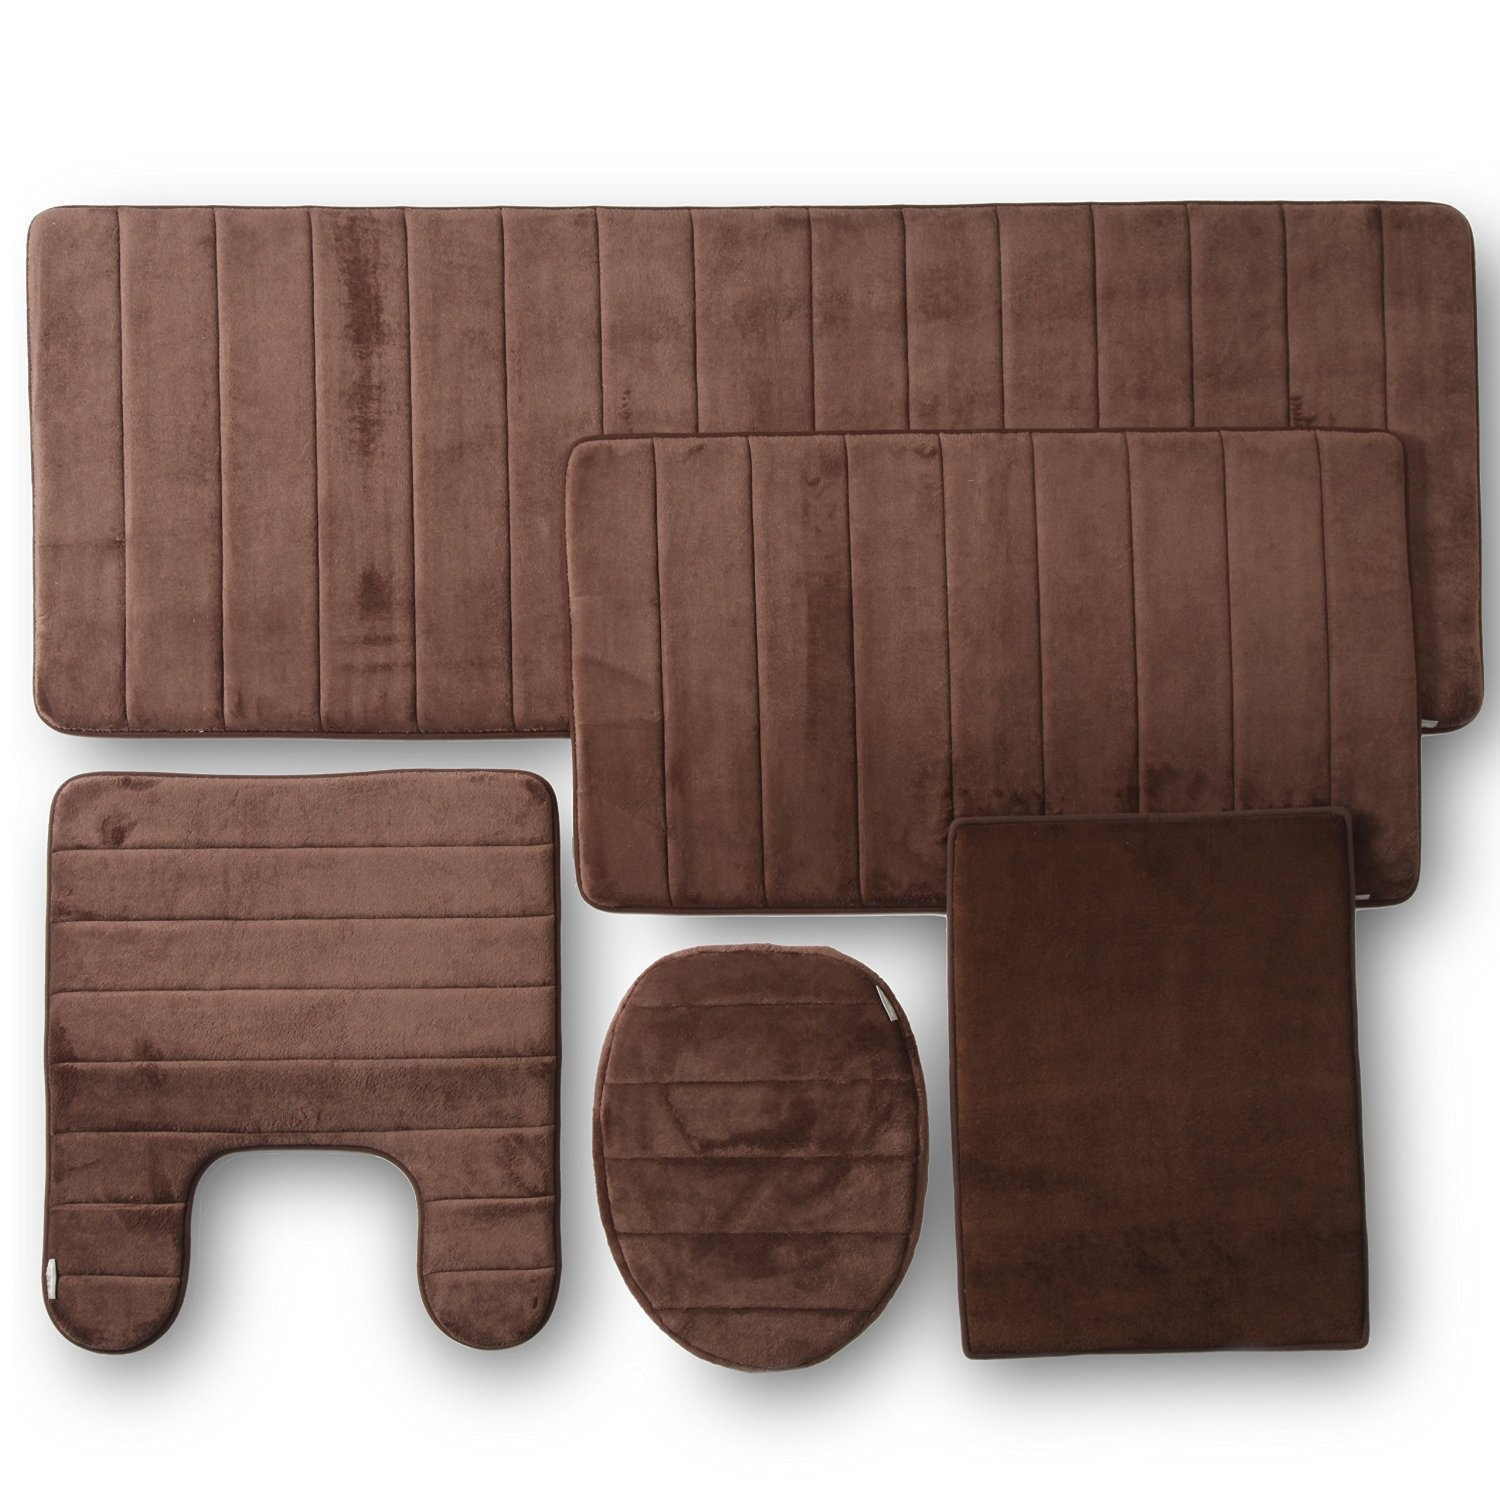 Permalink to Bath Set With Memory Foam Rugs